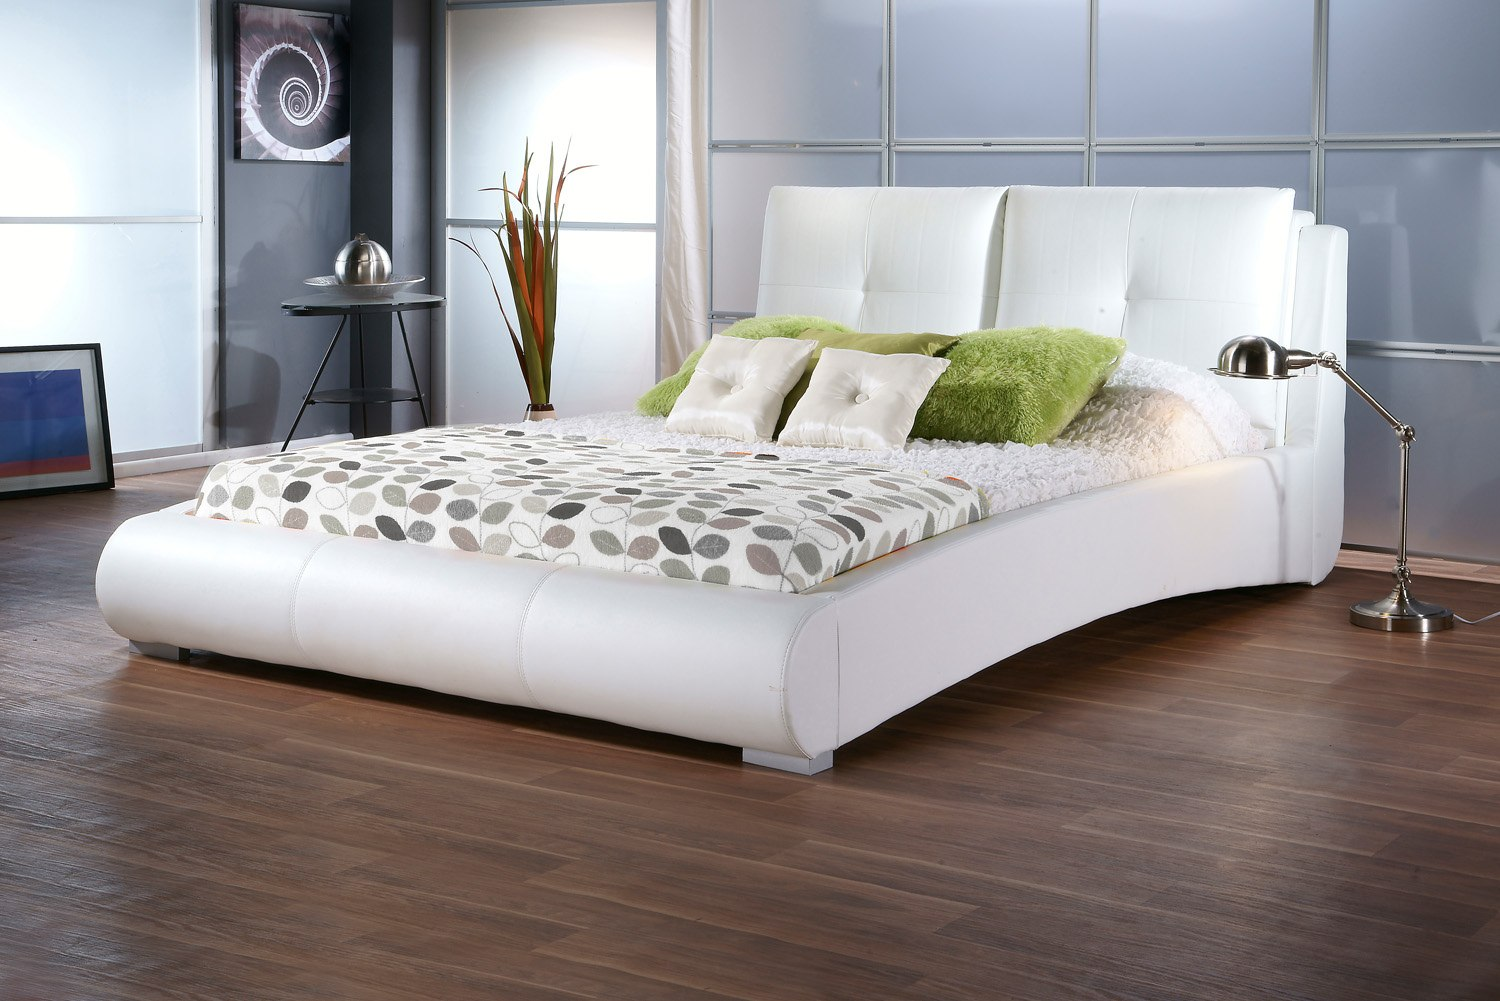 sophia white faux leather bedframe available from the world of beds askern doncaster - White Leather Bed Frame